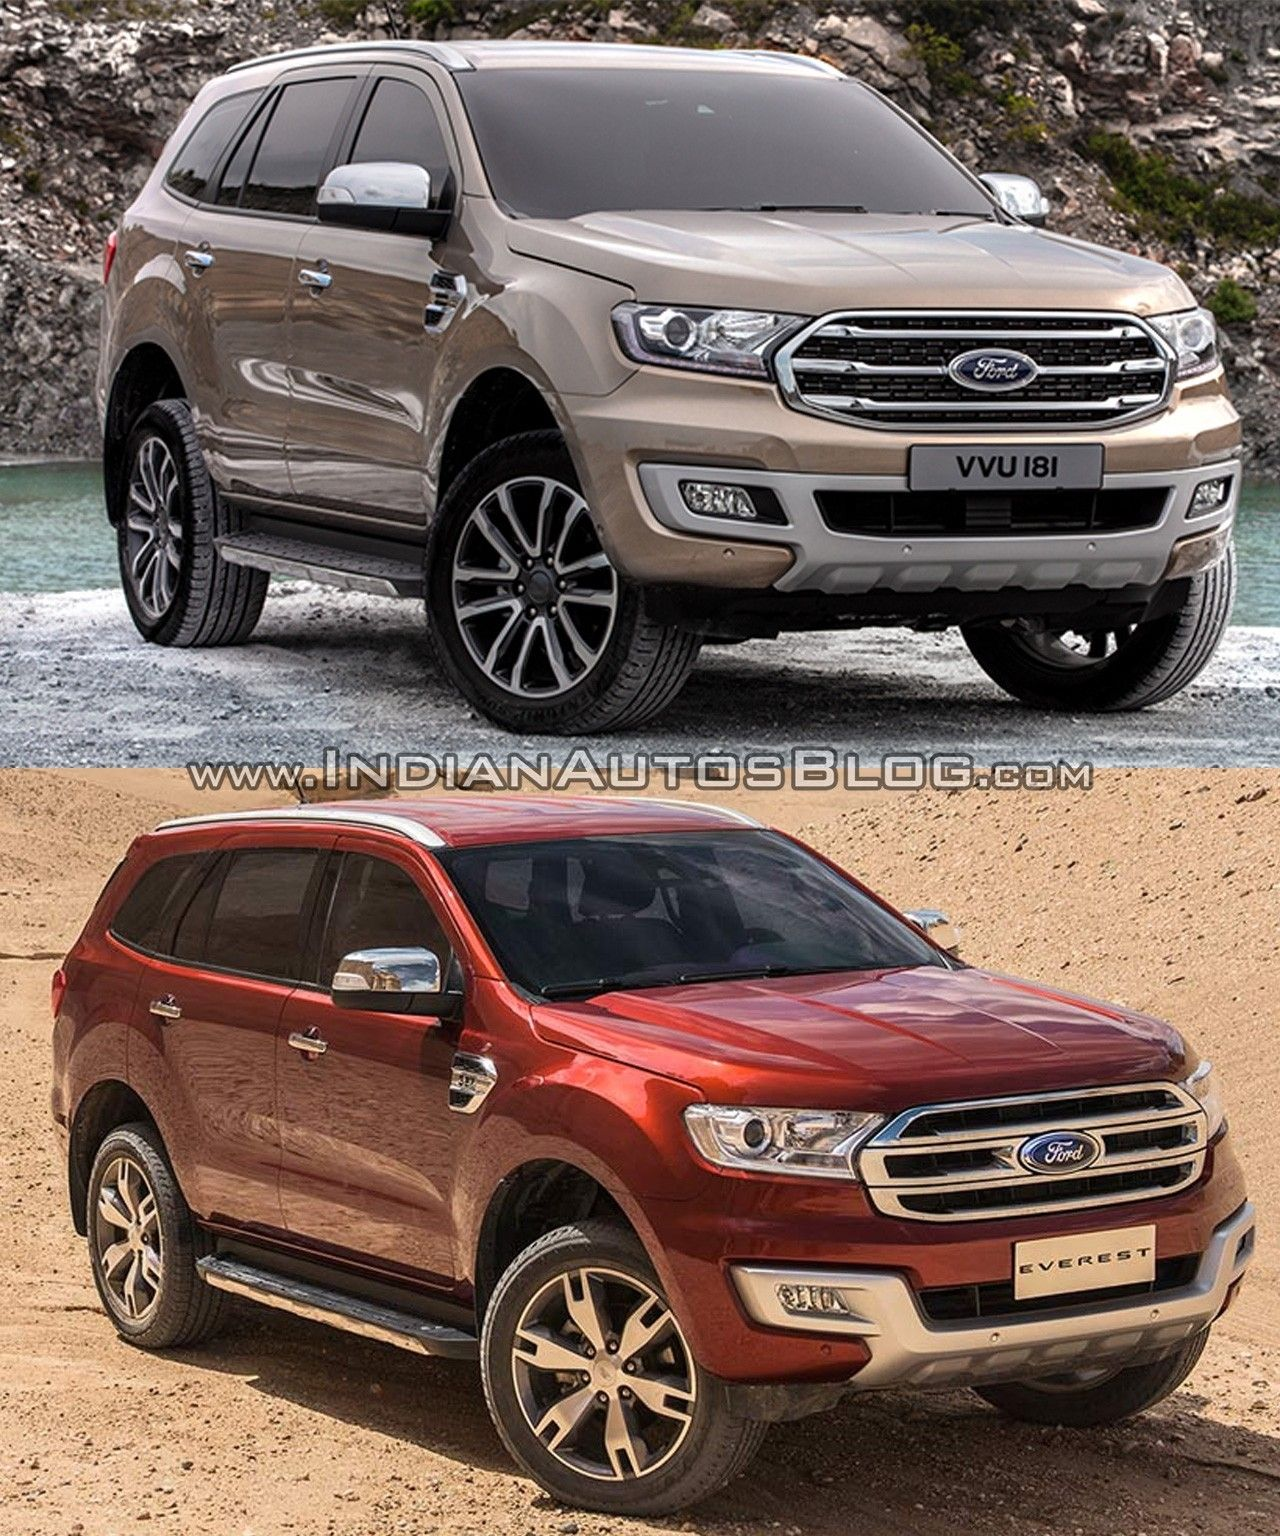 2019 Ford Everest Spy Shoot 2019 ford, Ford, Car